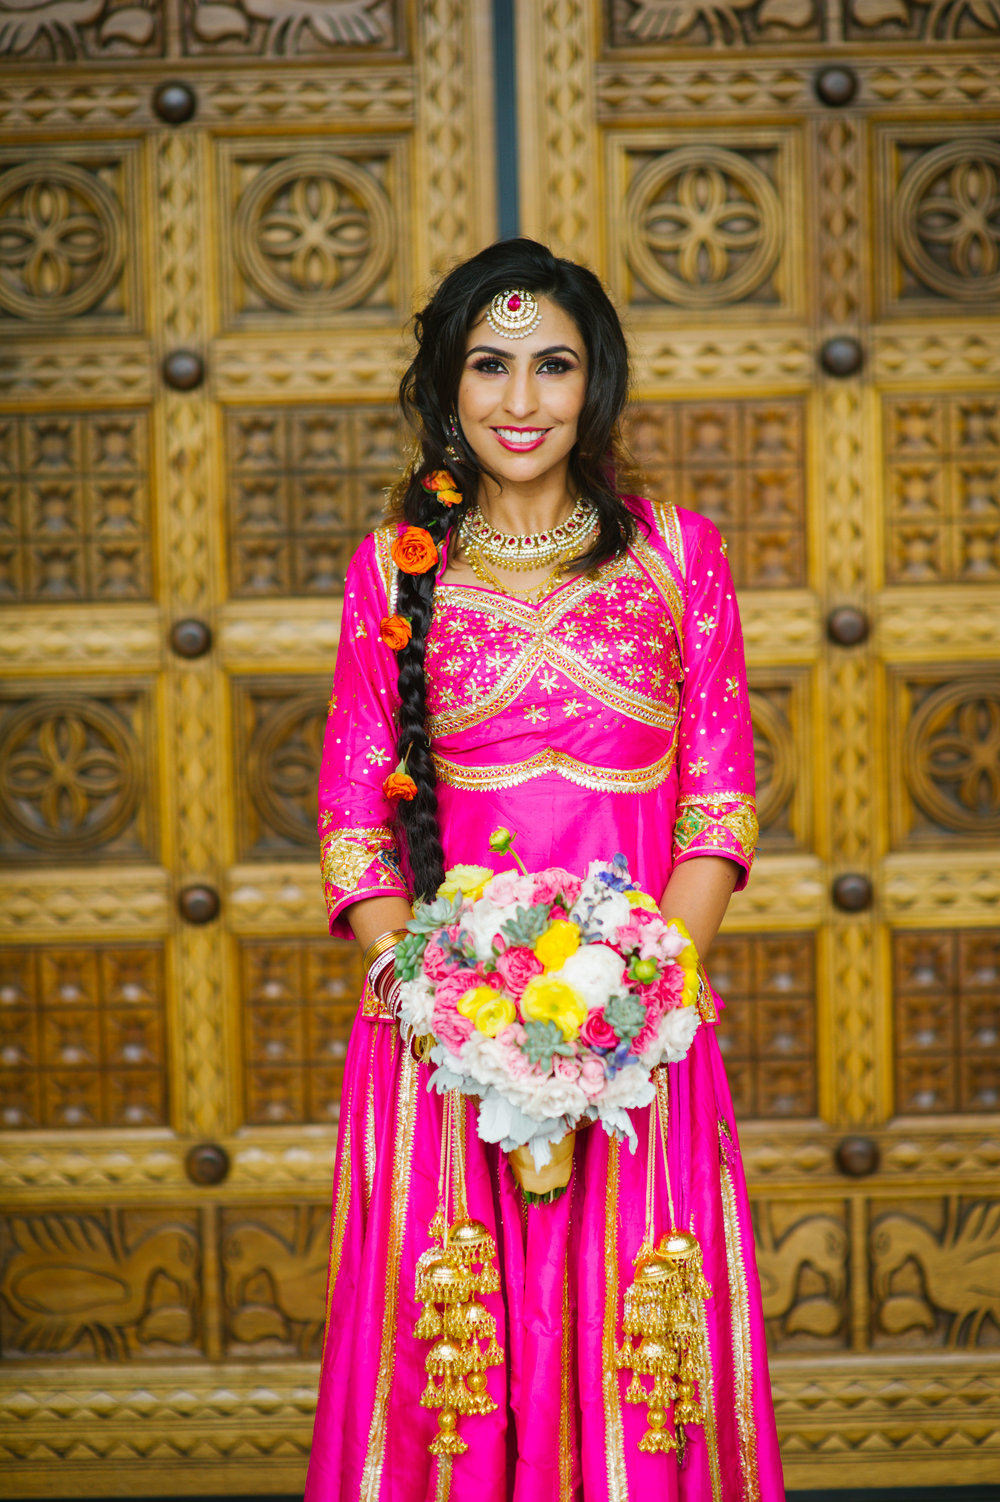 JKP_Indian_Weddings_0045.JPG